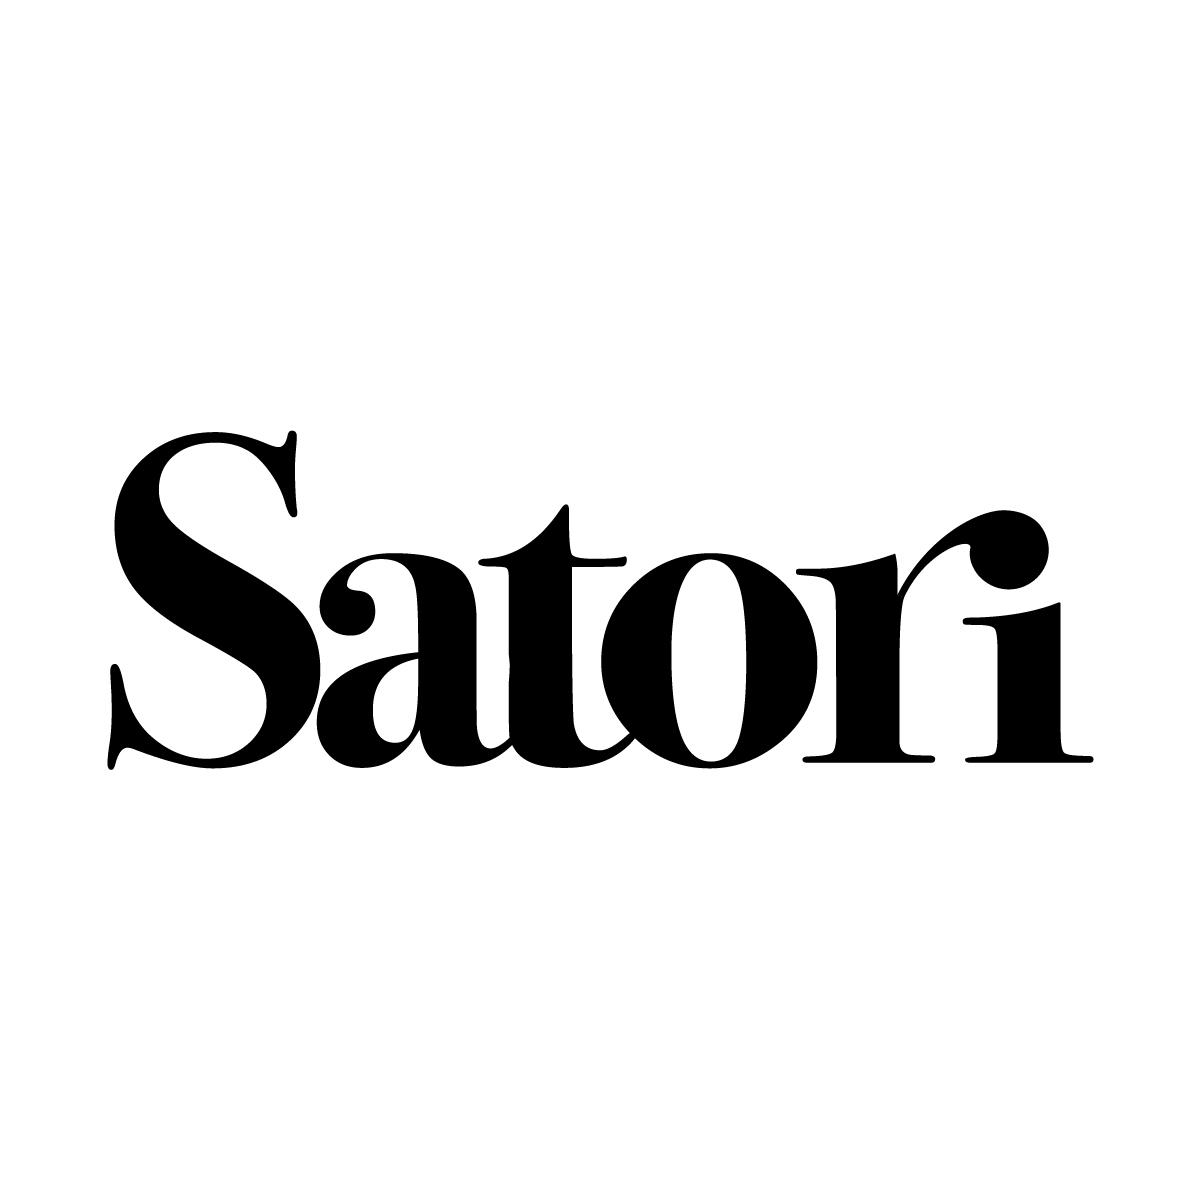 Satori Notebook Co. Logo